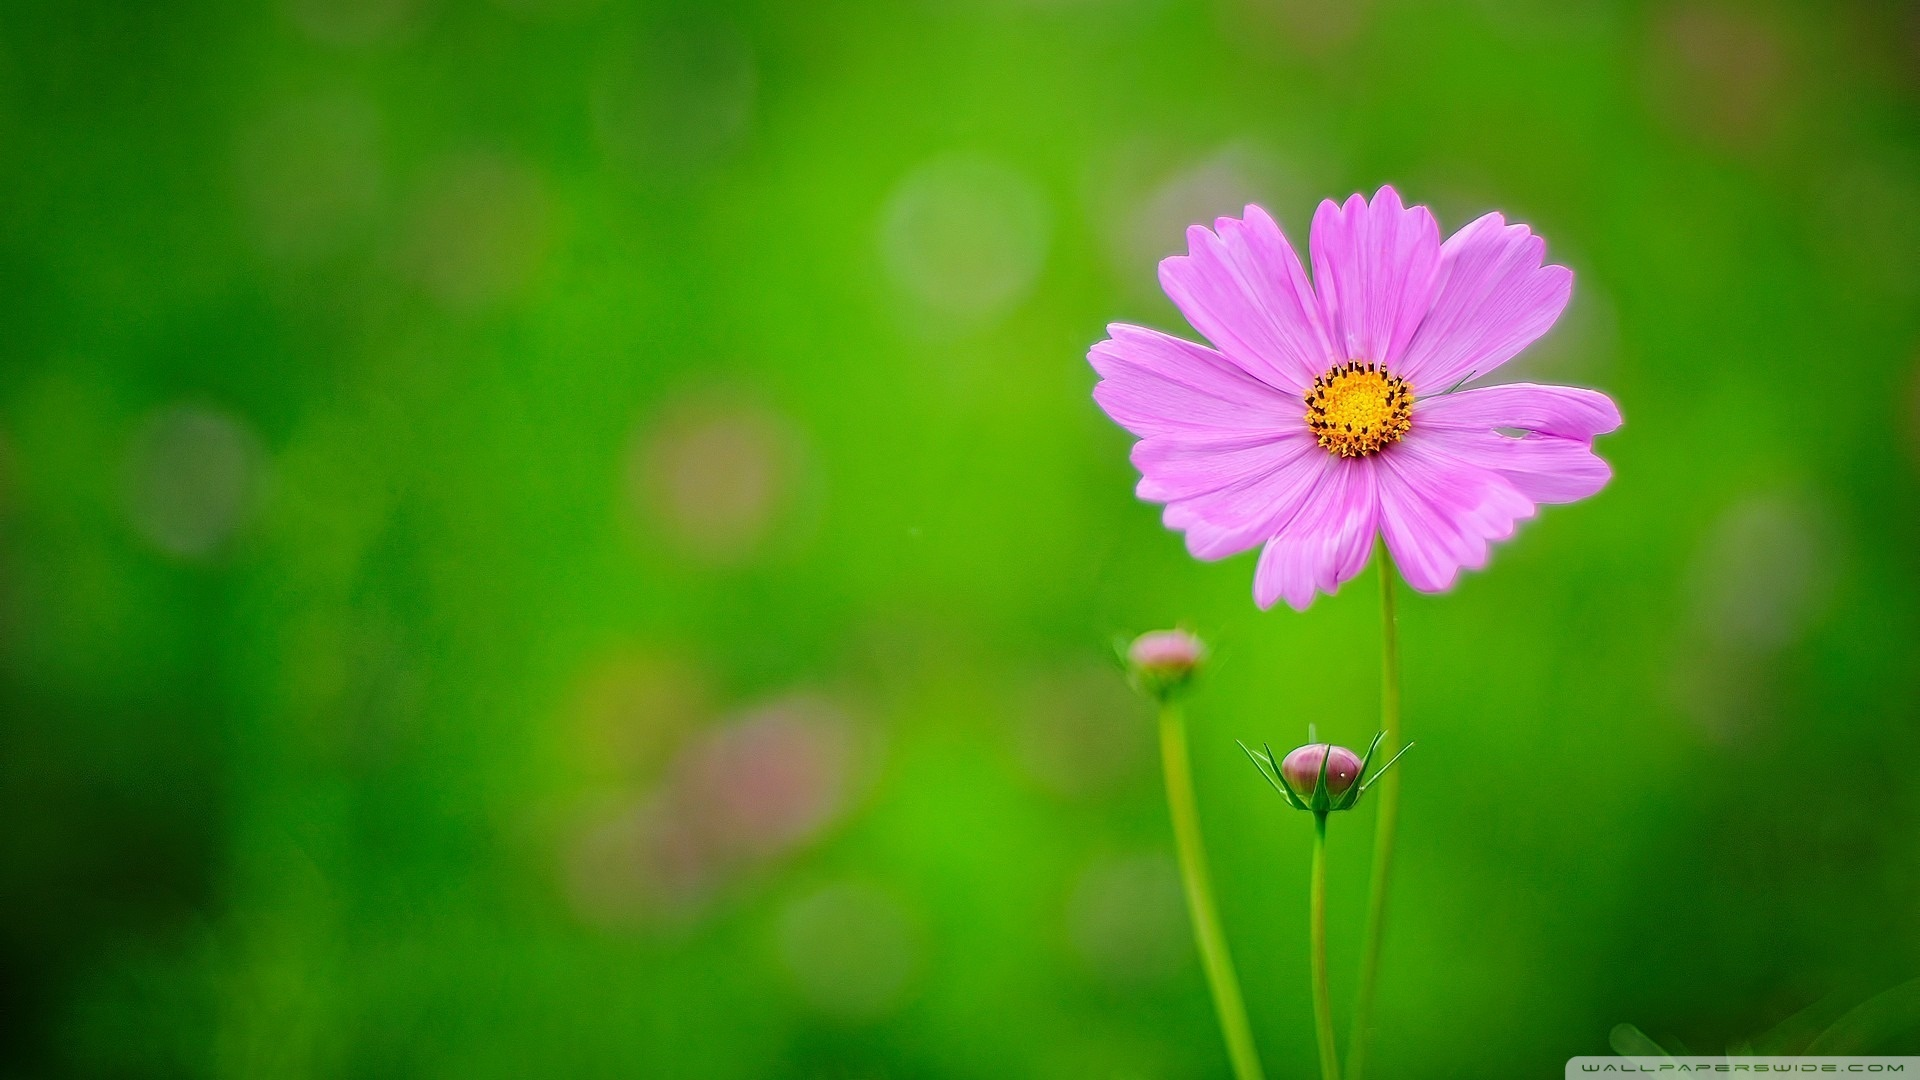 wallpaper background green pink flower floral images 1920x1080